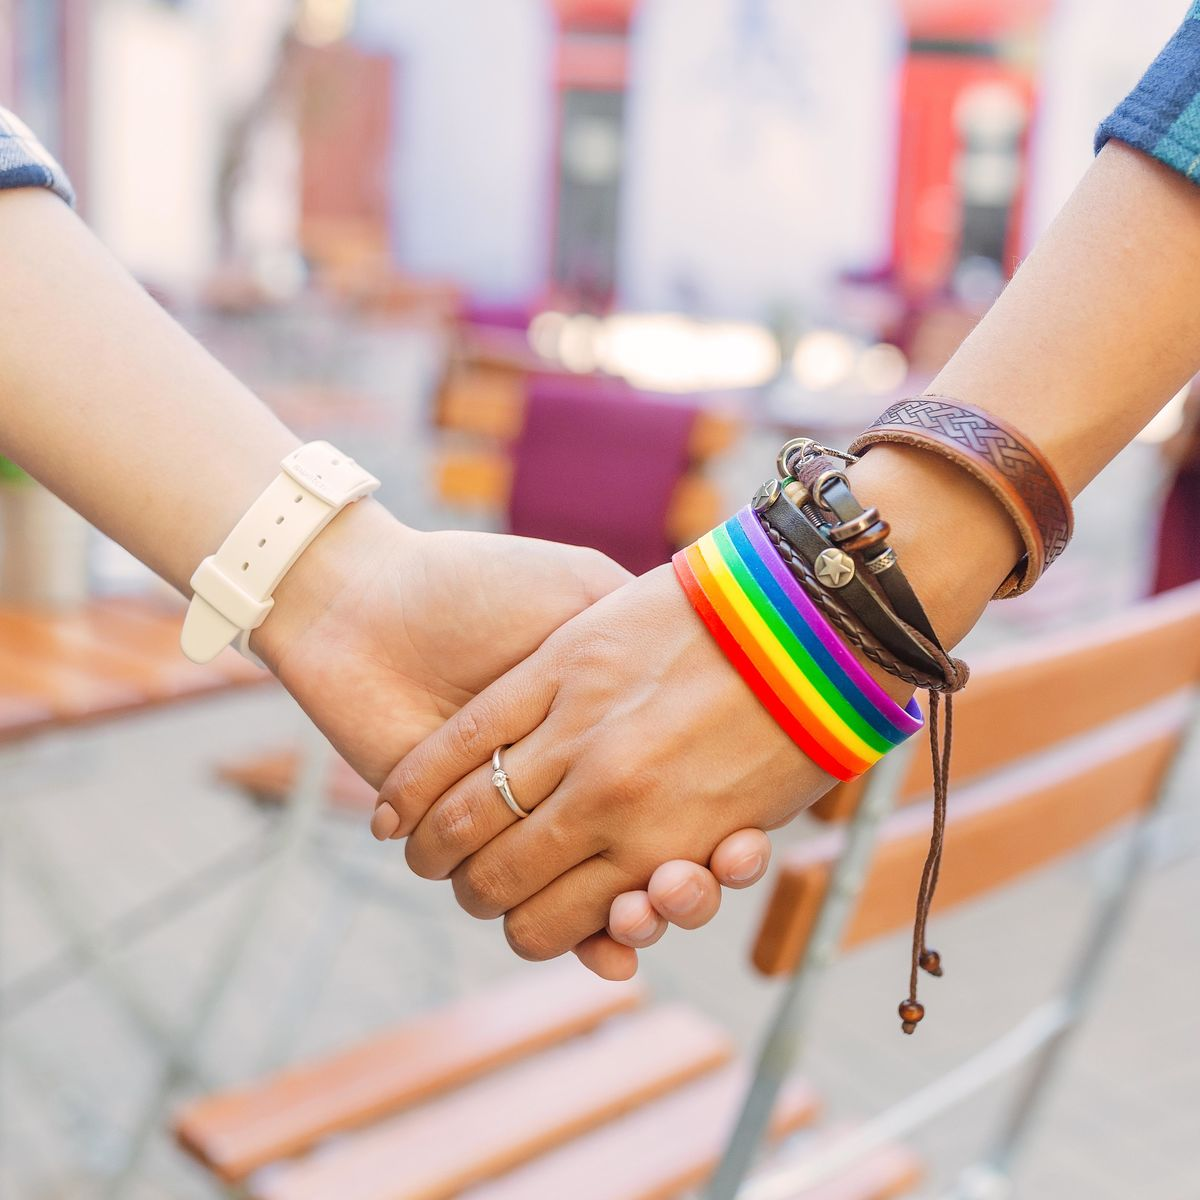 Two women hold hands - one wearing a Pride rainbow bracelet.